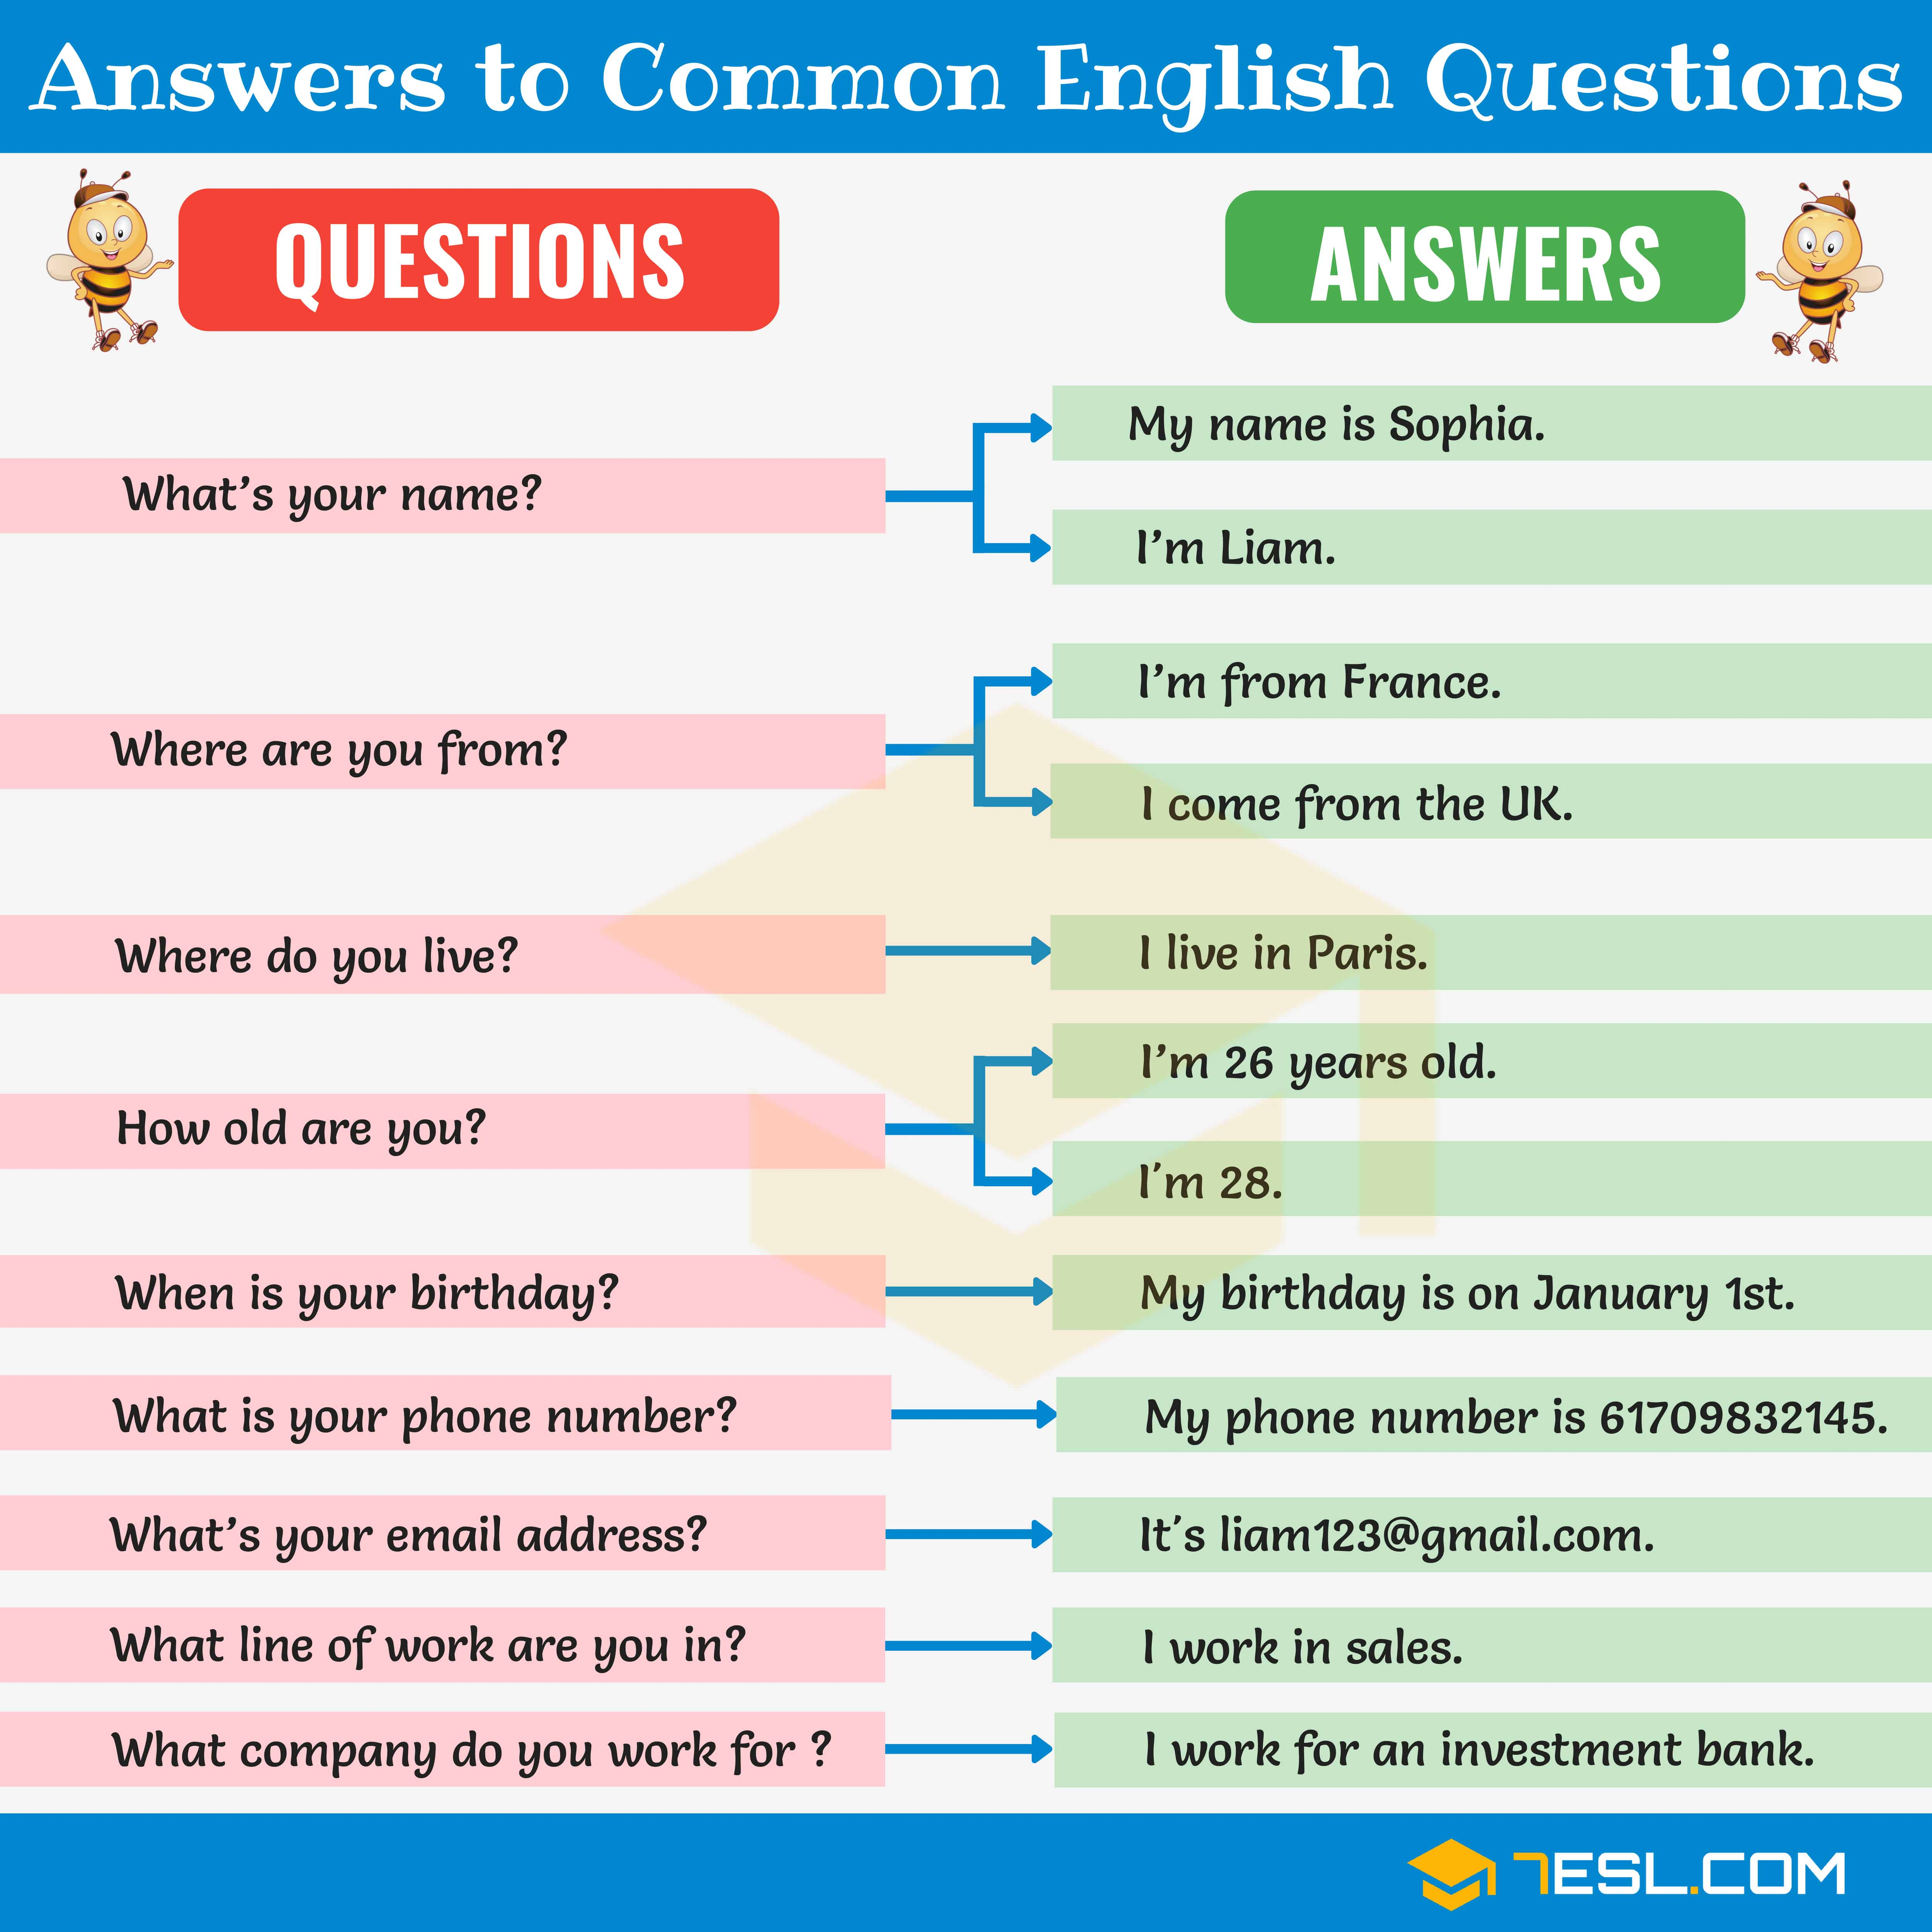 200 Answers To Common English Questions